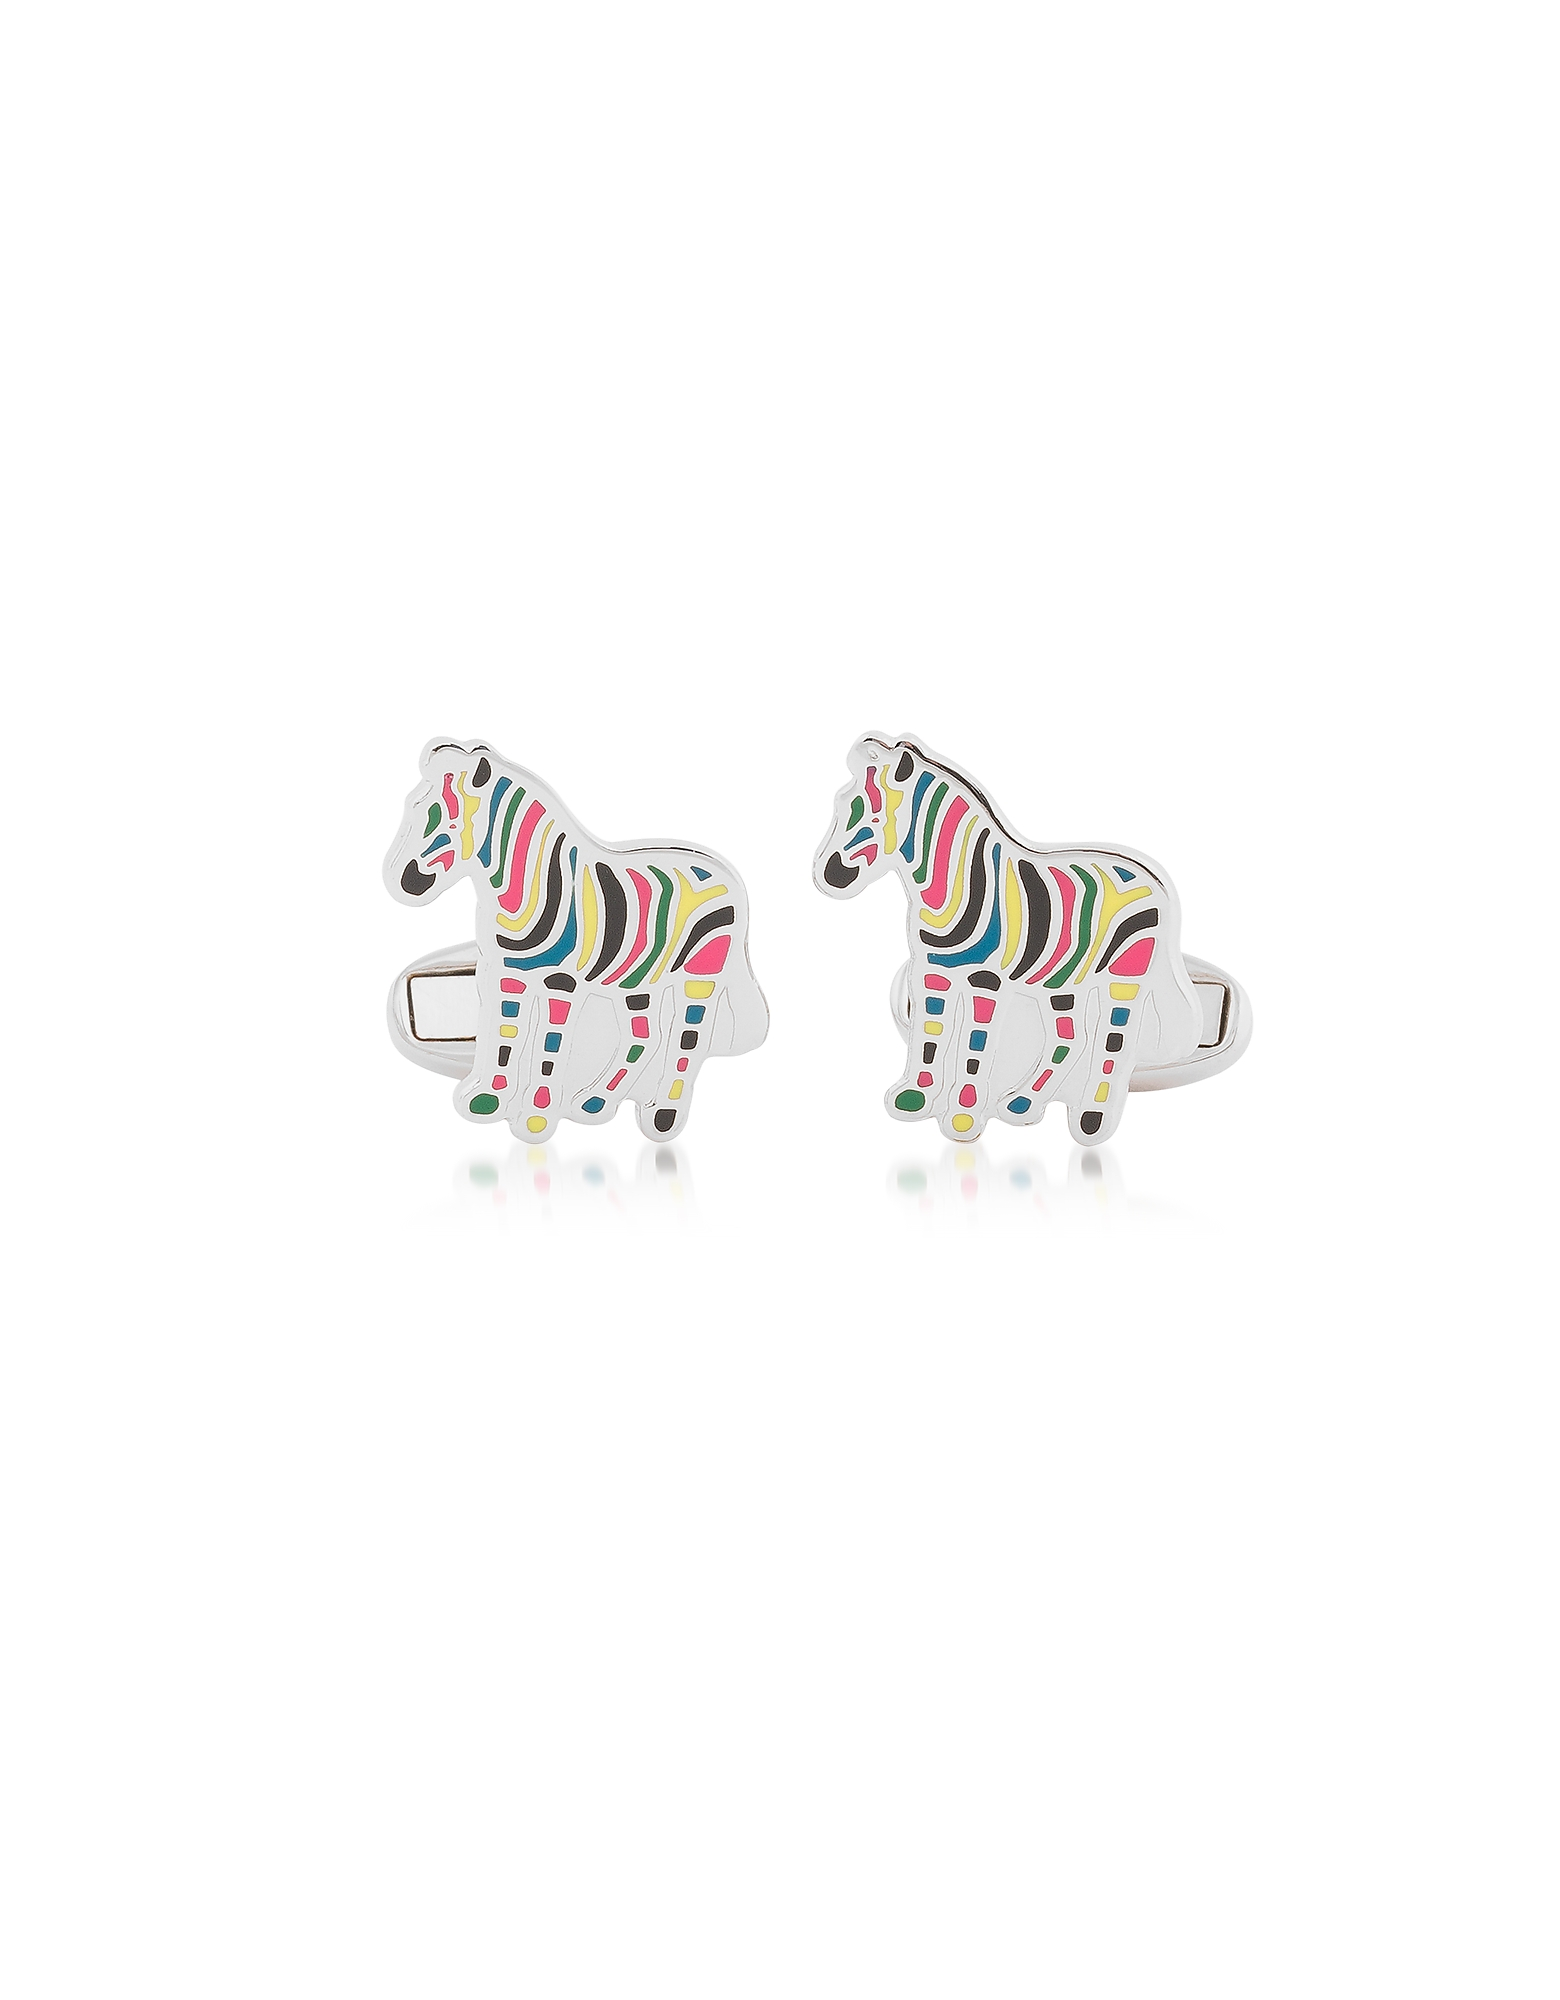 Striped Zebra Metal Cufflinks